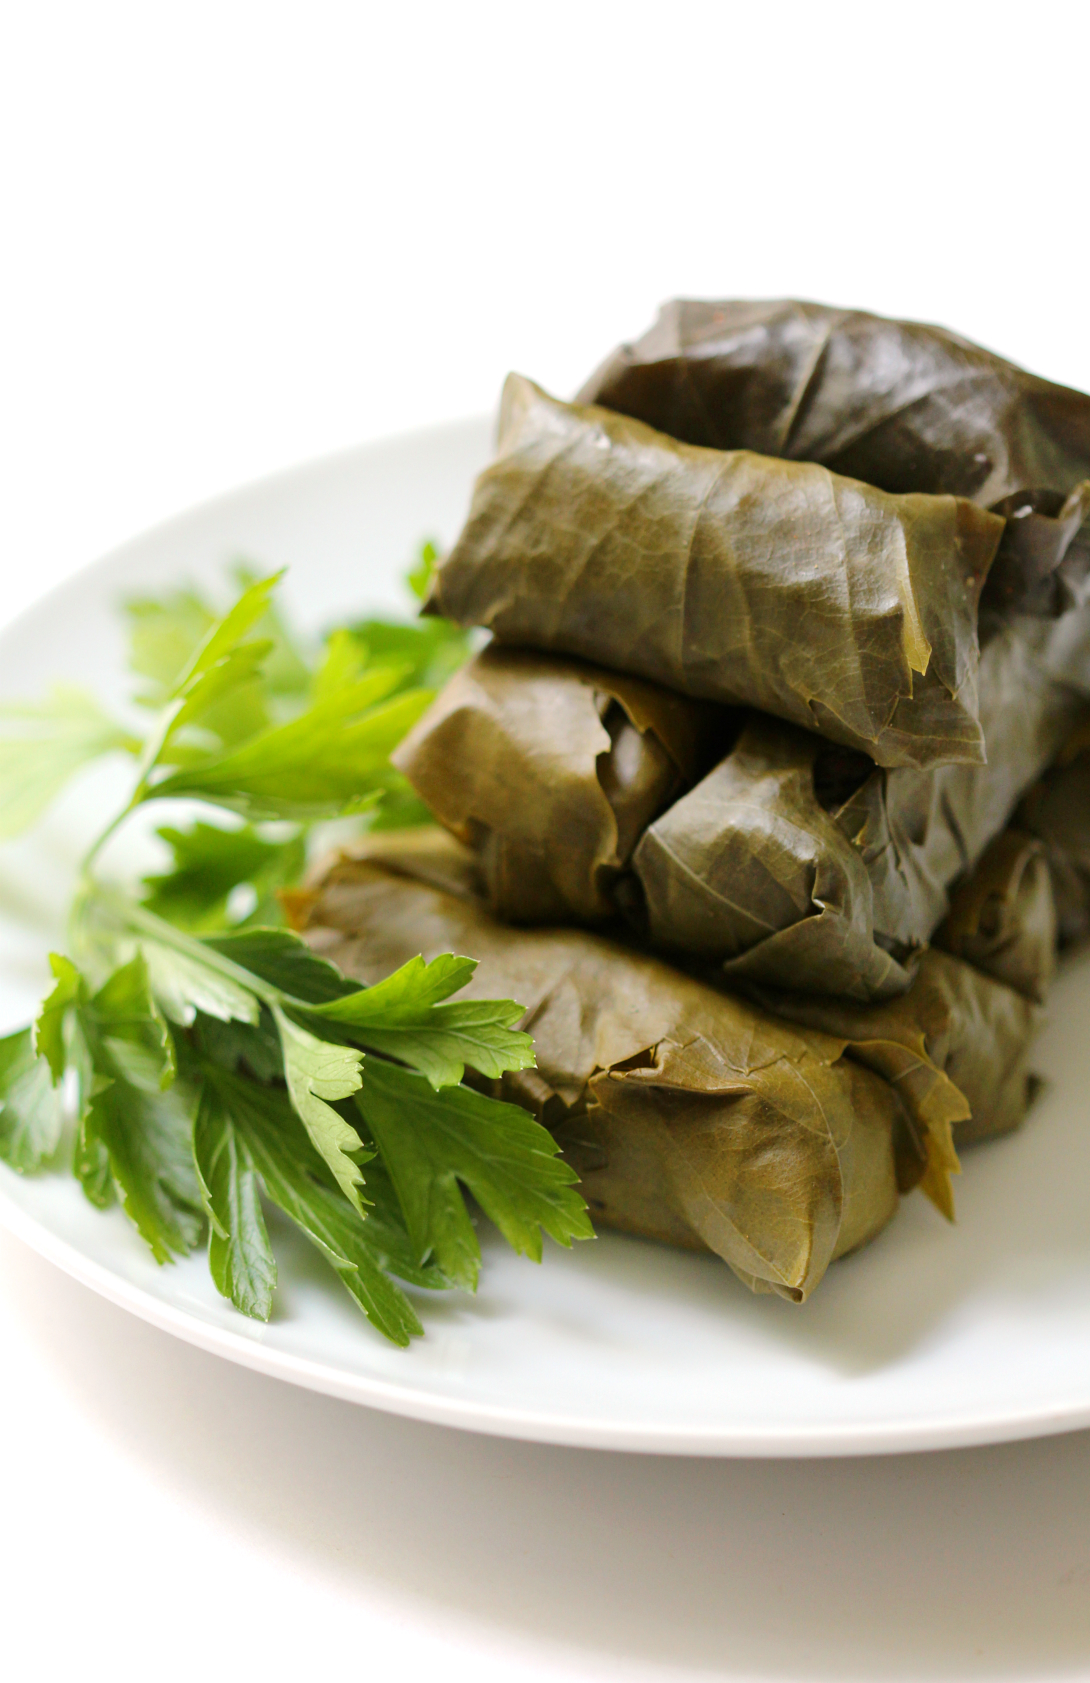 Vegan Rice Stuffed Dolmades | Strength and Sunshine @RebeccaGF666 A Mediterranean classic made vegan and gluten-free. Rice stuffed dolmades (grape leaves) full of fresh herbs, roasted eggplant, olives, spices, and aromatic basmati rice! A fantastic appetizer, side, or main dish!